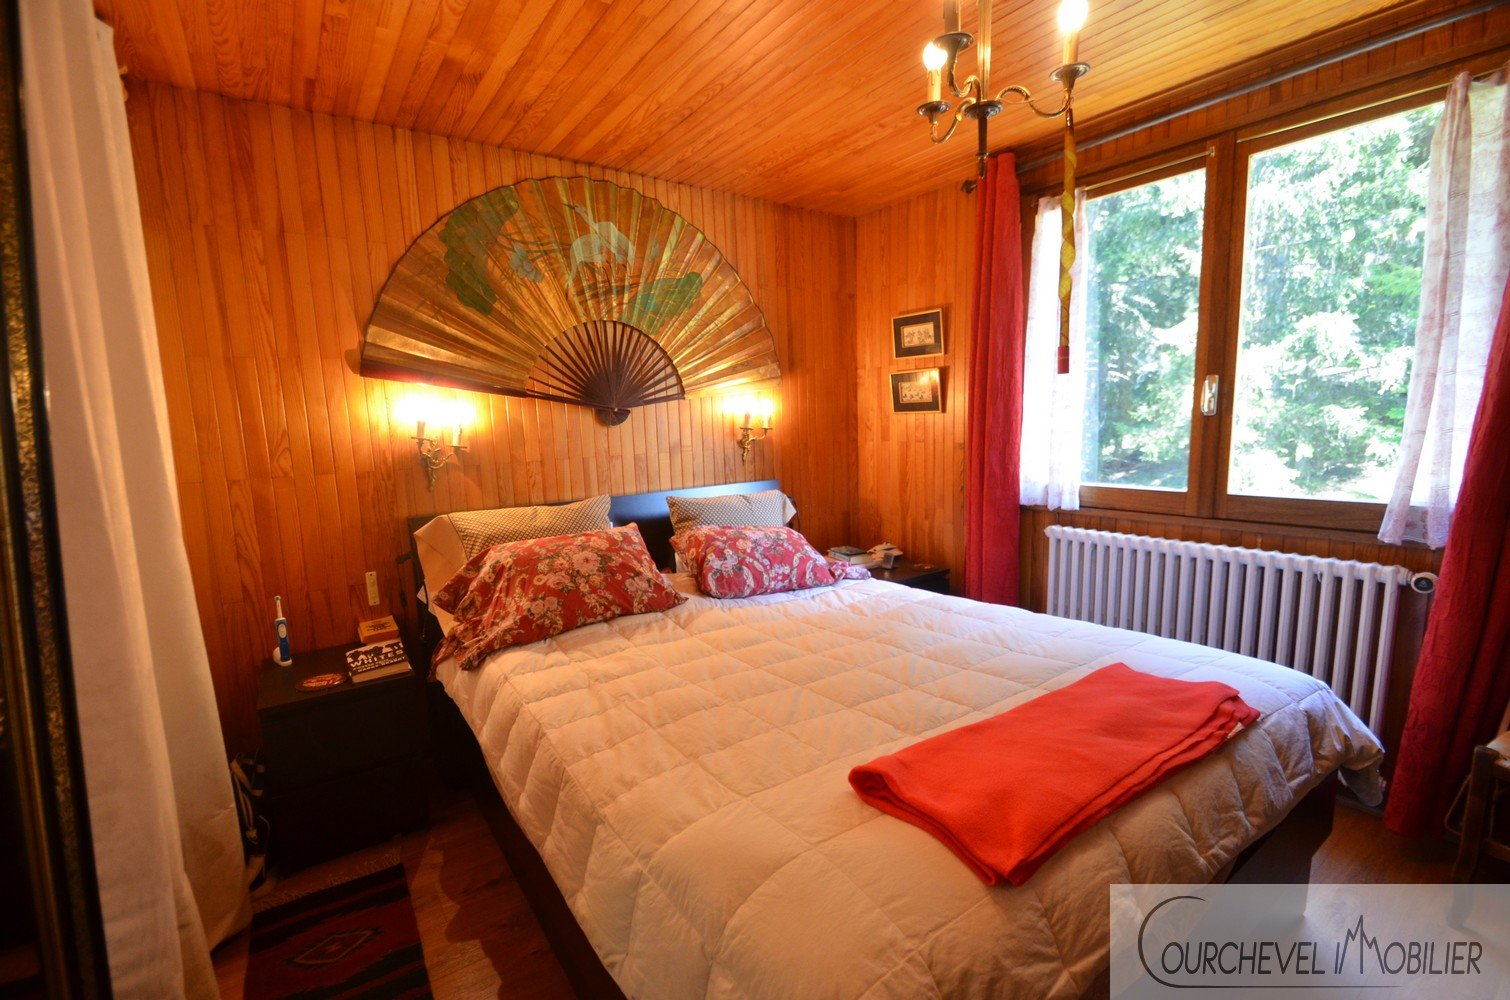 Verkoop Appartement - Courchevel Moriond 1650